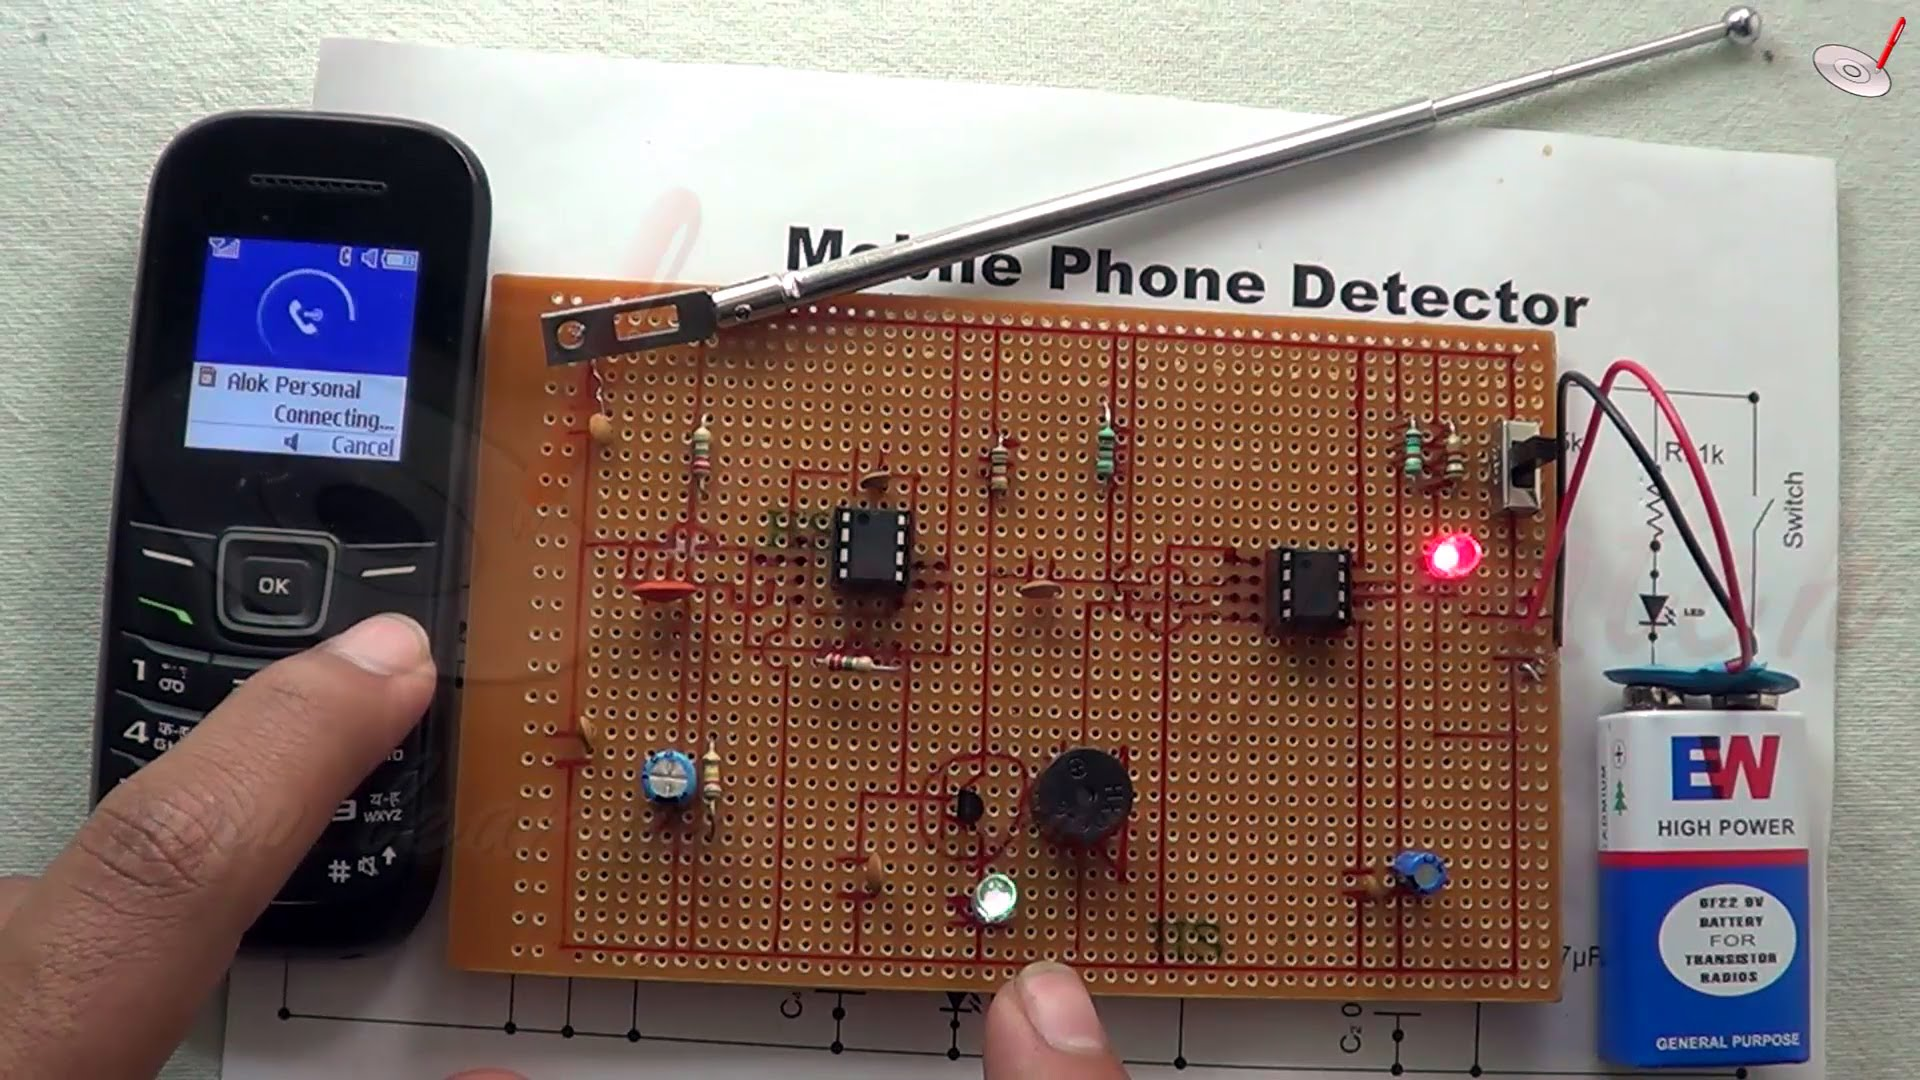 Science Project Mobile Phone Detector